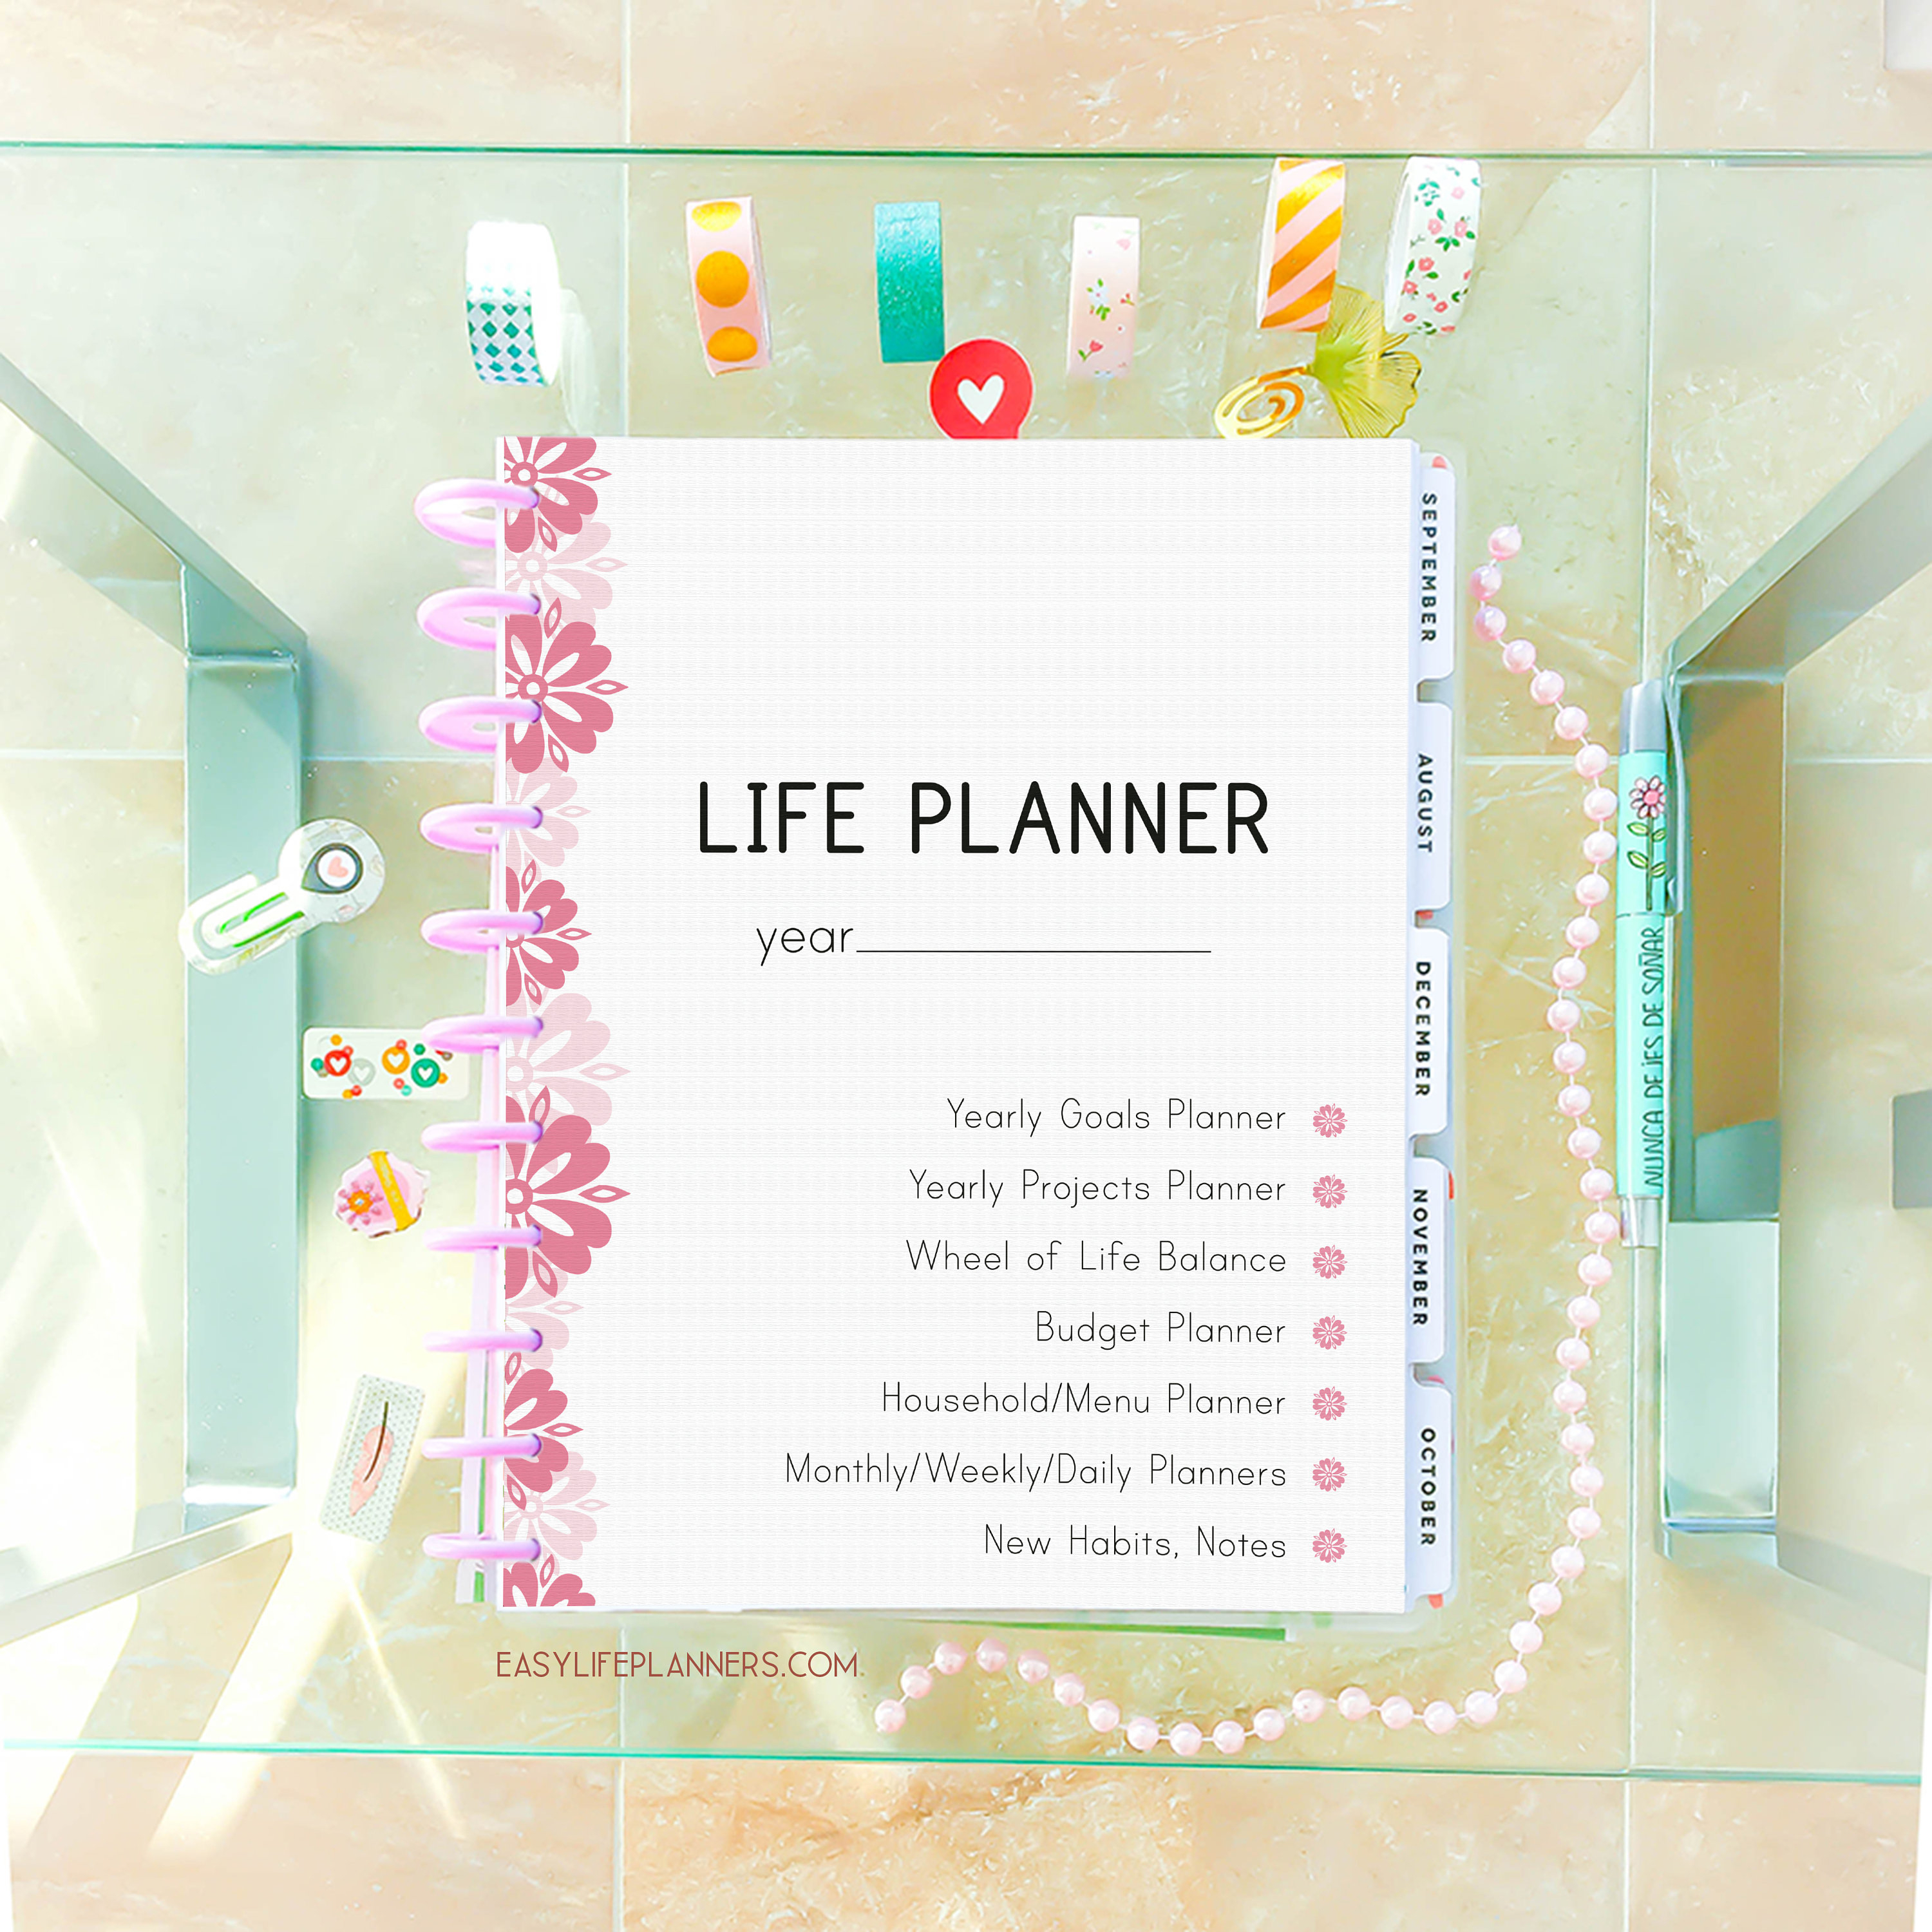 Life Planner 2020 Printable Planner Pages, Daily Planner